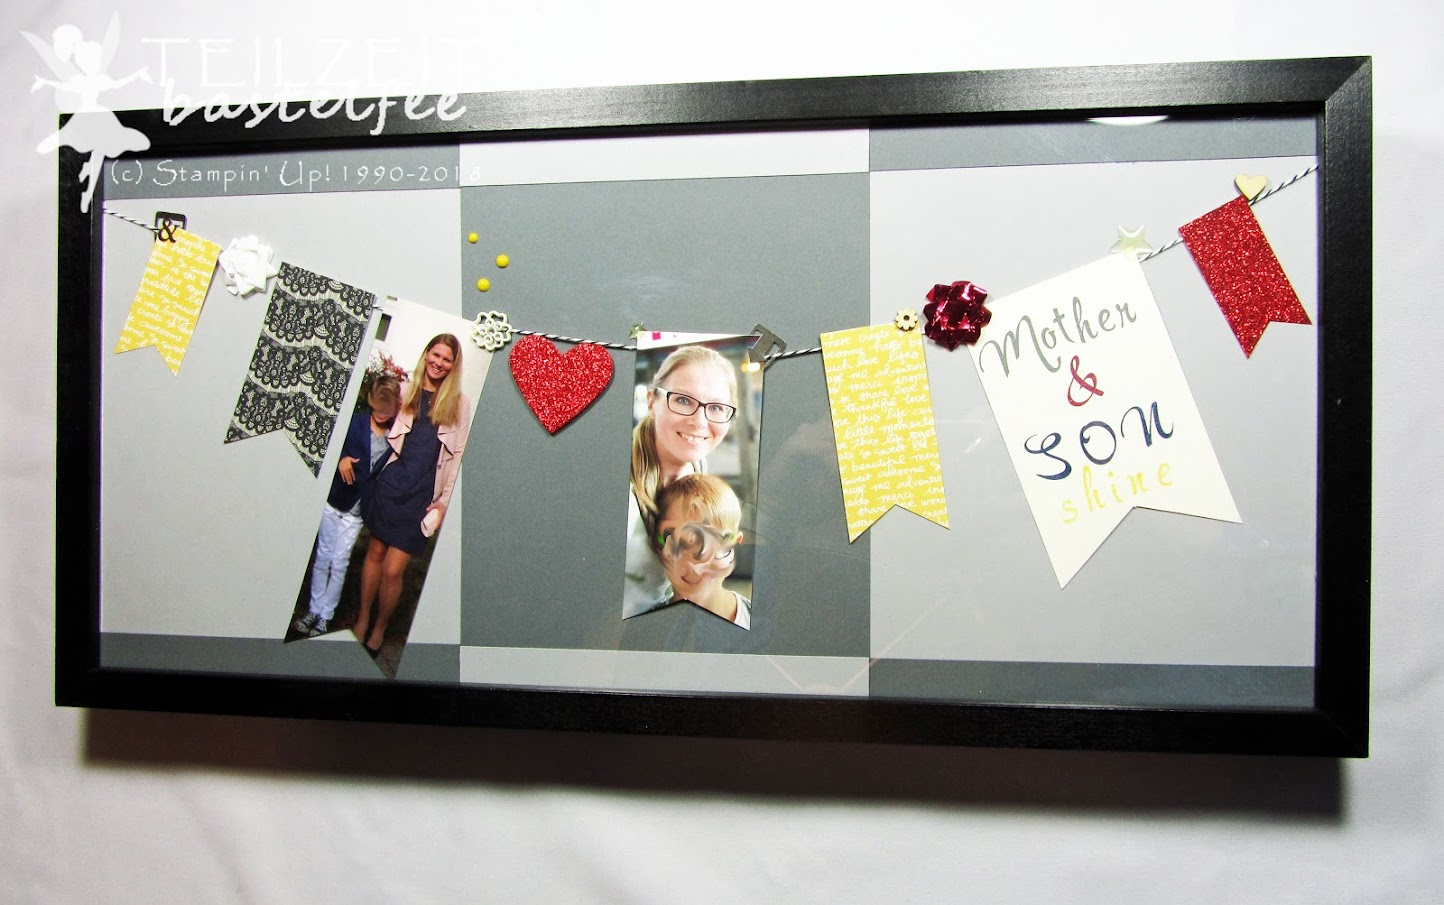 Stampin' Up! - Inkspire_me, Bilderrahmen, Banners, photo frame, mother and son